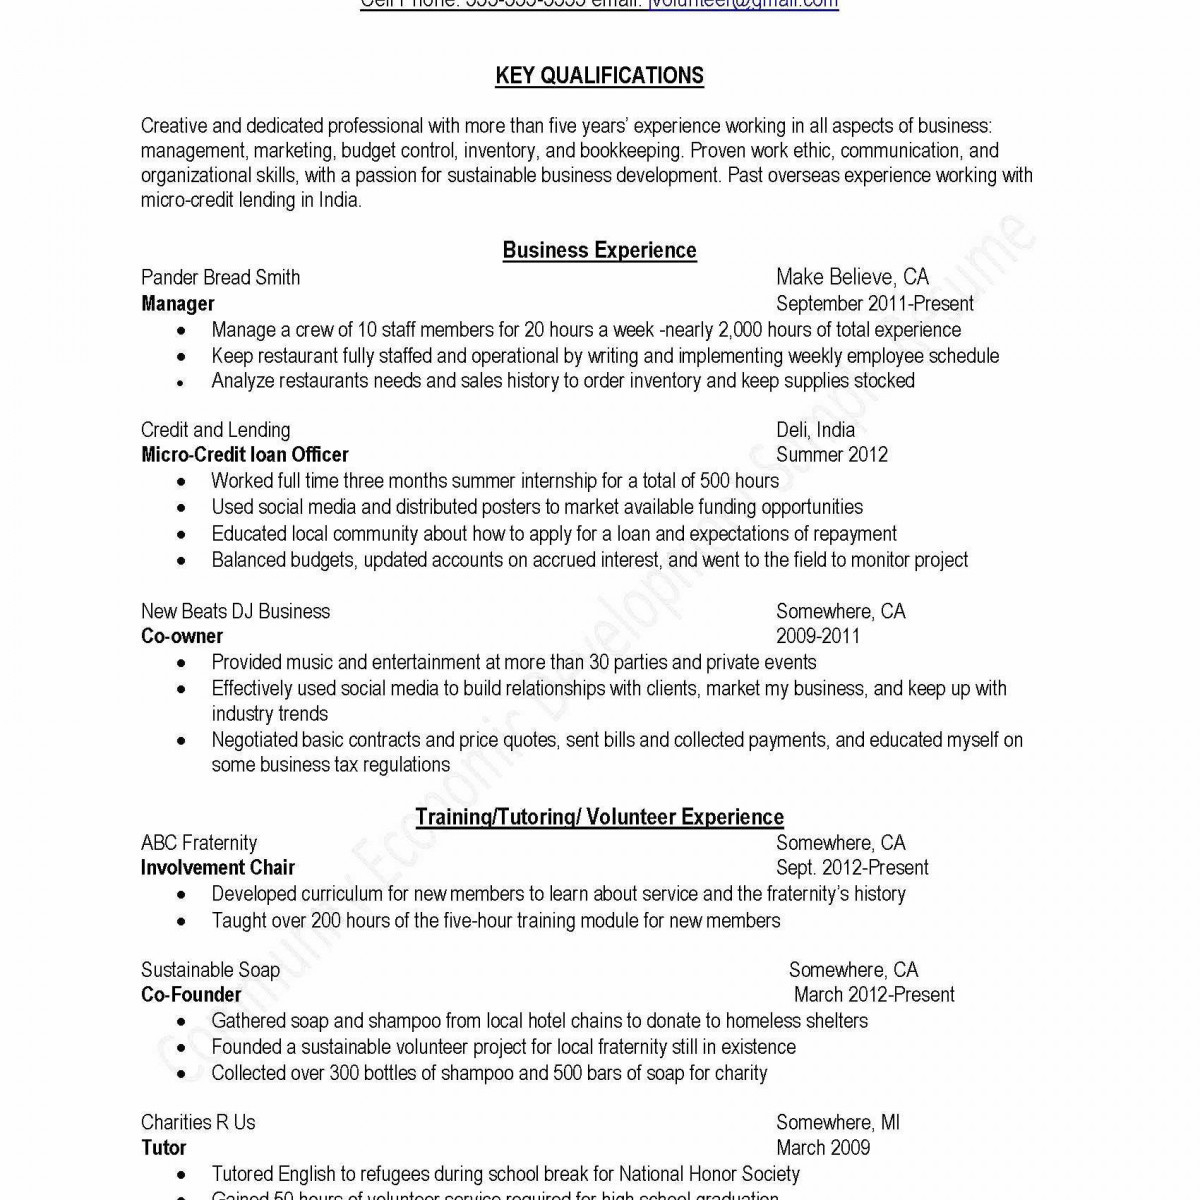 Resume Writing Tips 2018 - 36 Charming How to Make Resume for College Application N8z